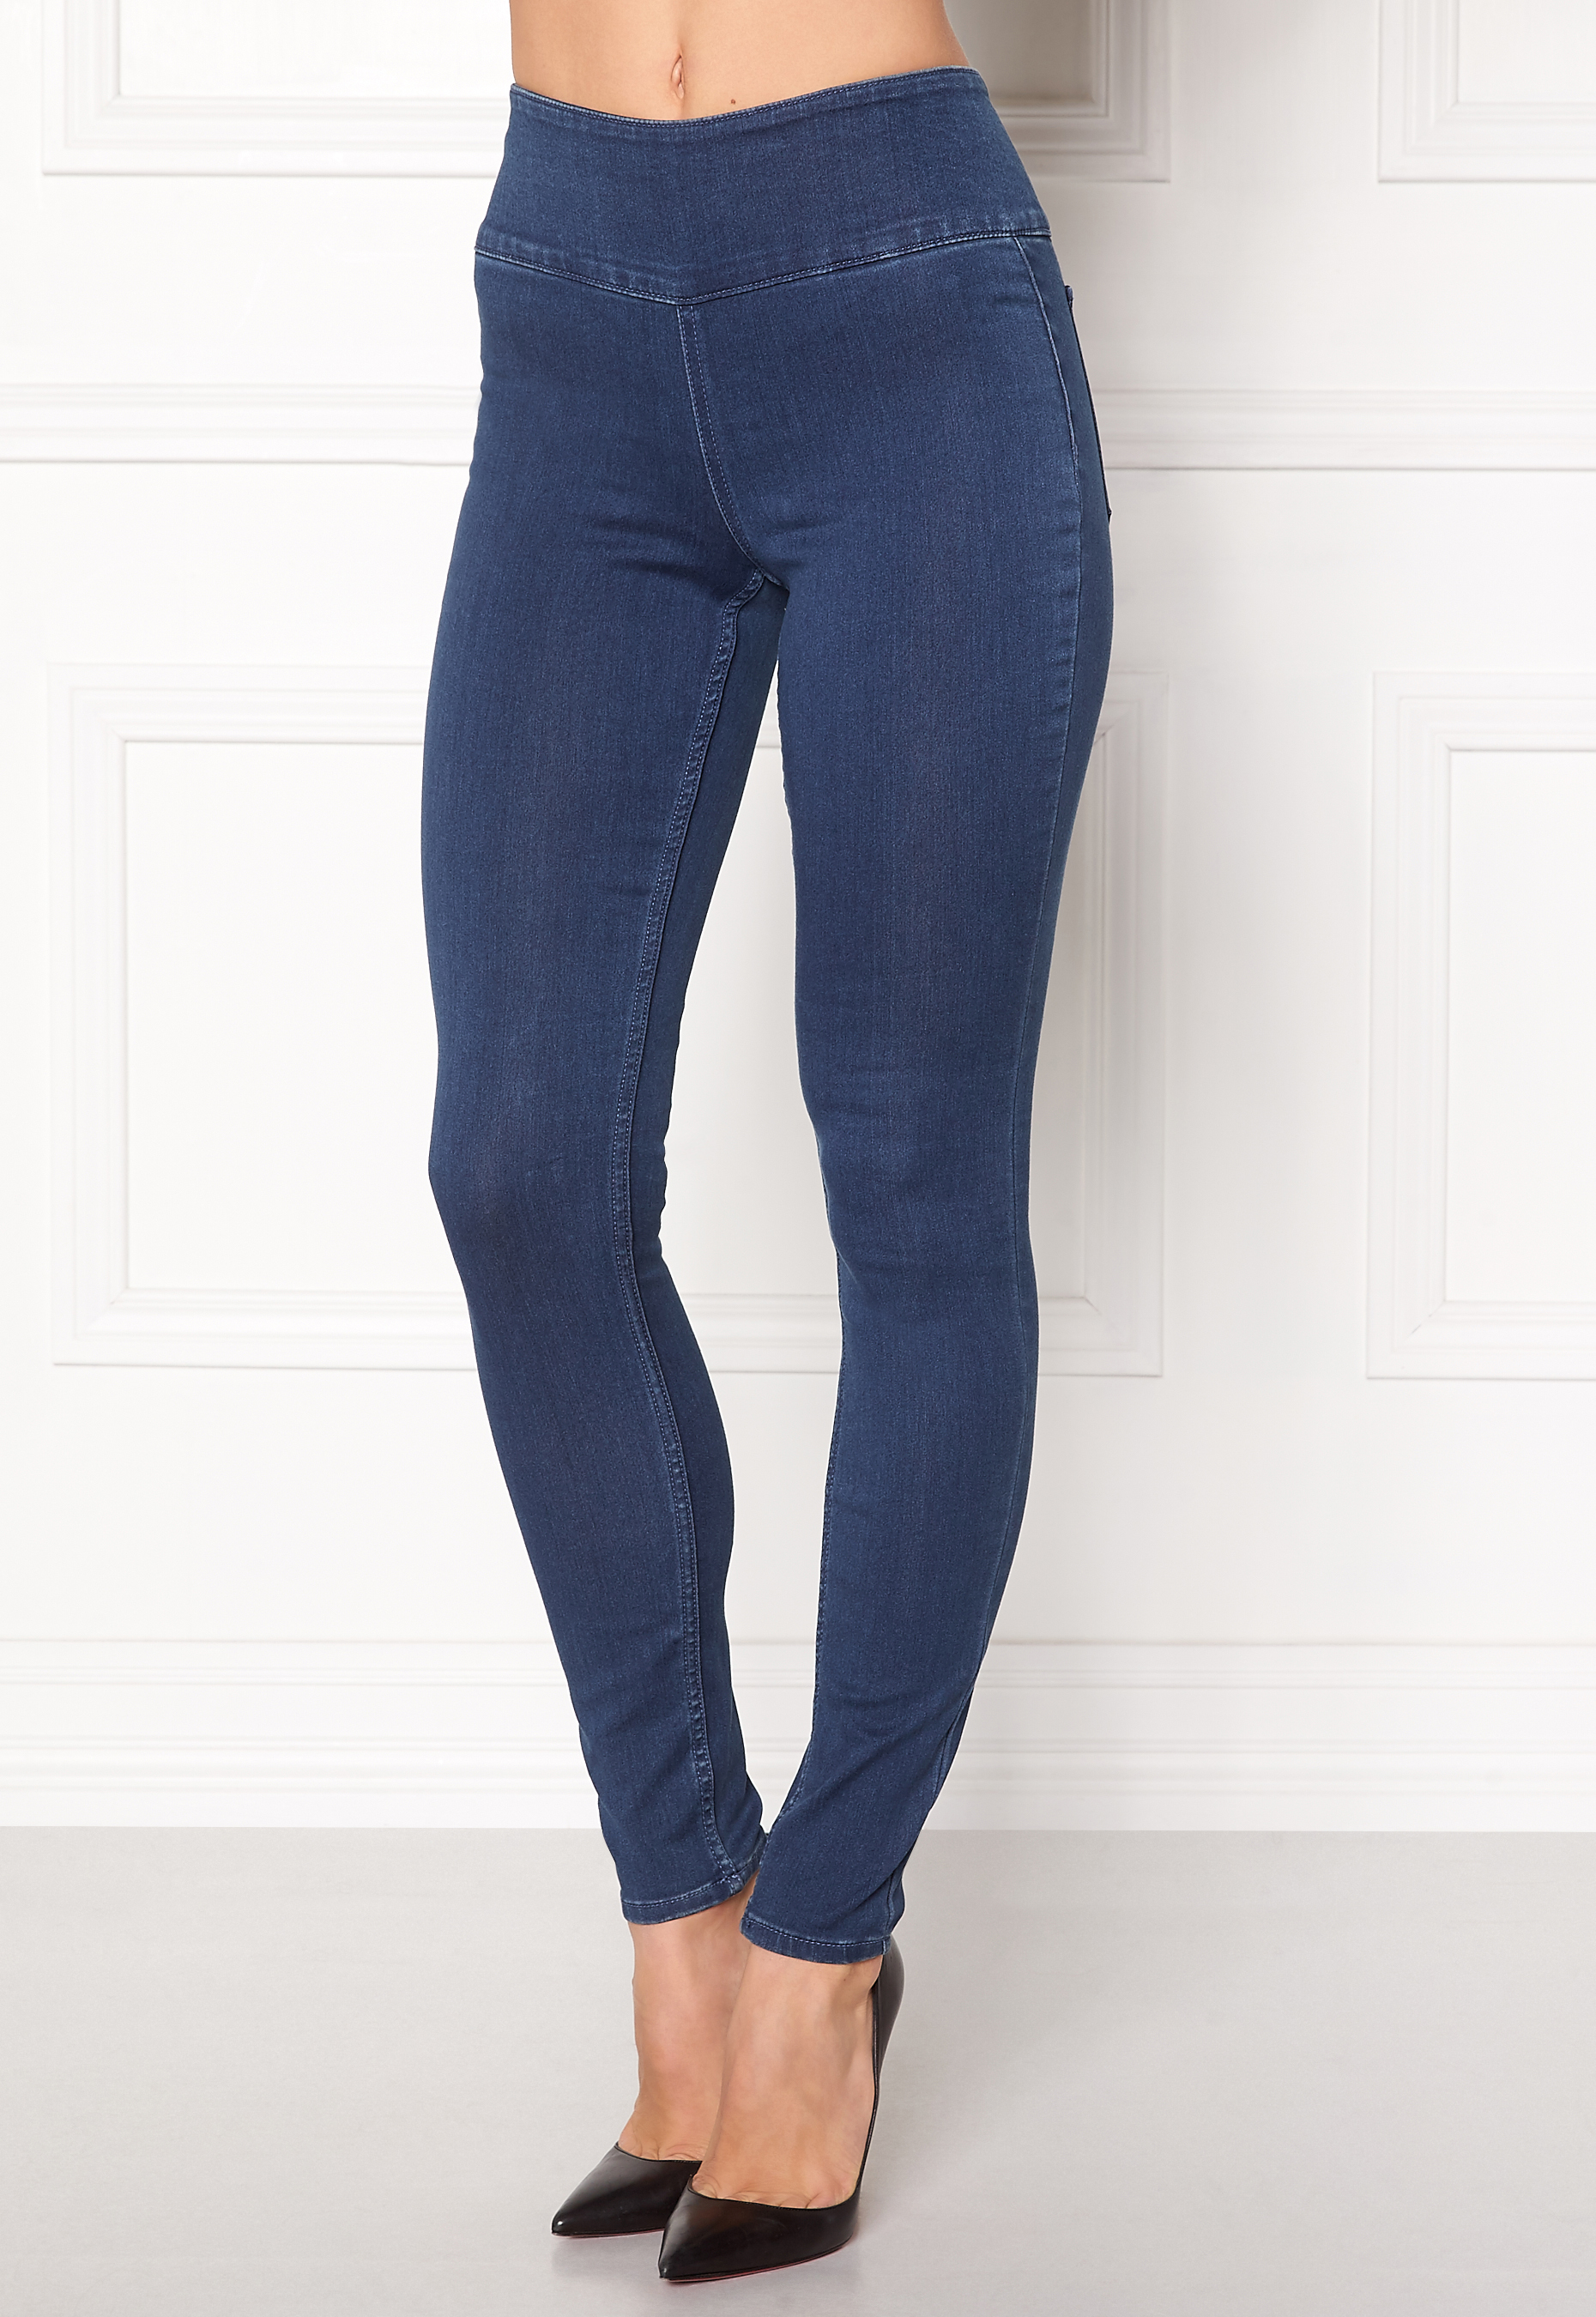 These juniors' jeggings from Mudd provide a fun and flattering look. Sponsored Links Outside companies pay to advertise via these links when specific phrases and words are searched.